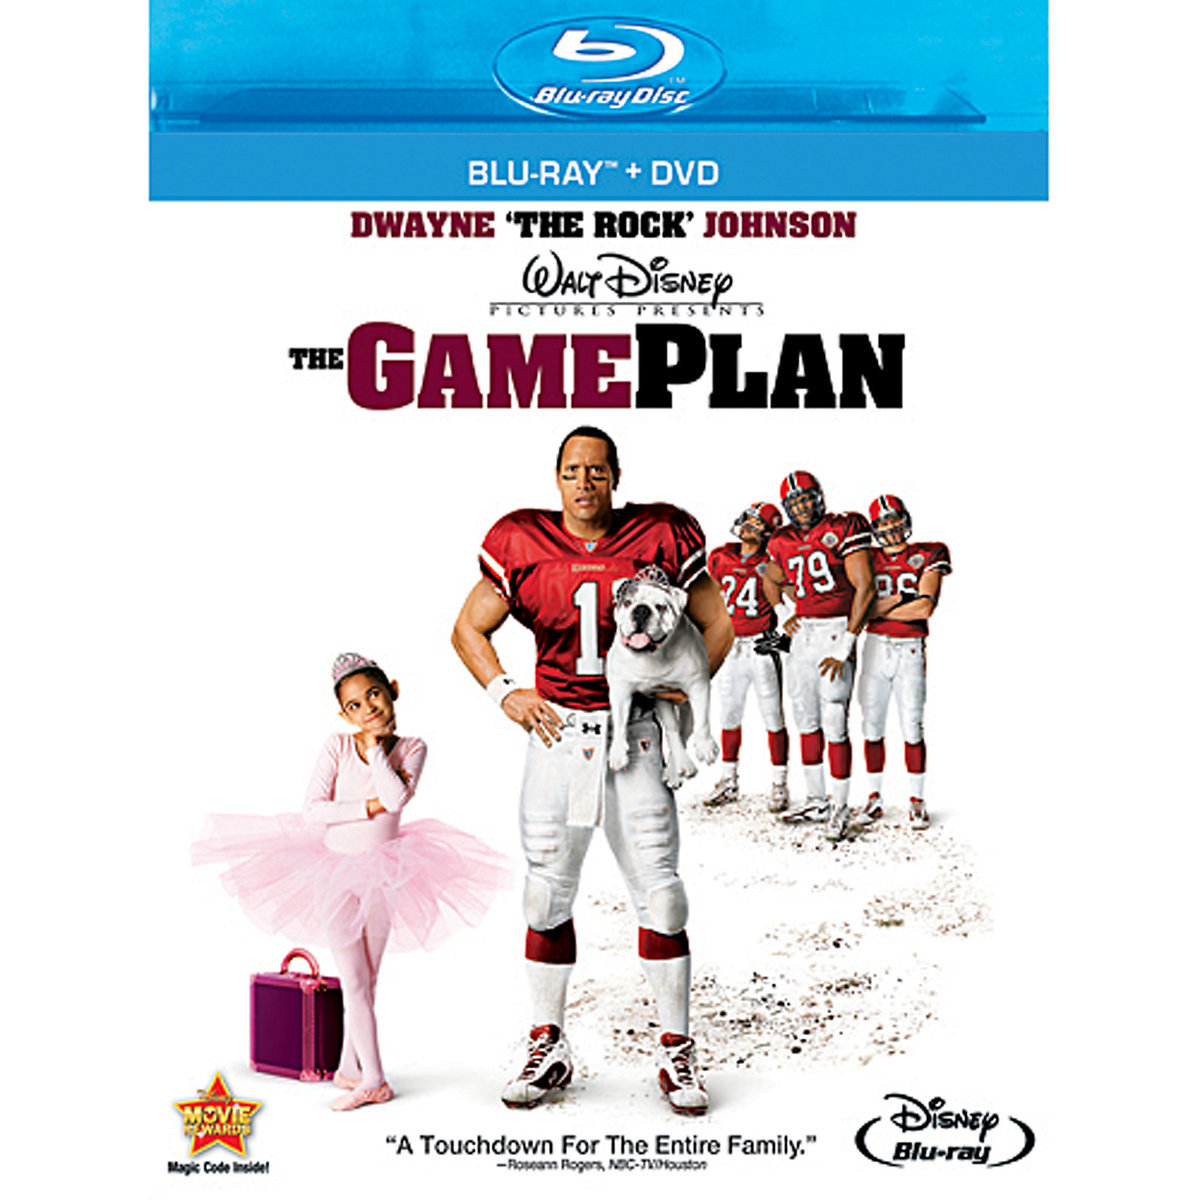 The Game Plan (Blu-ray + DVD)